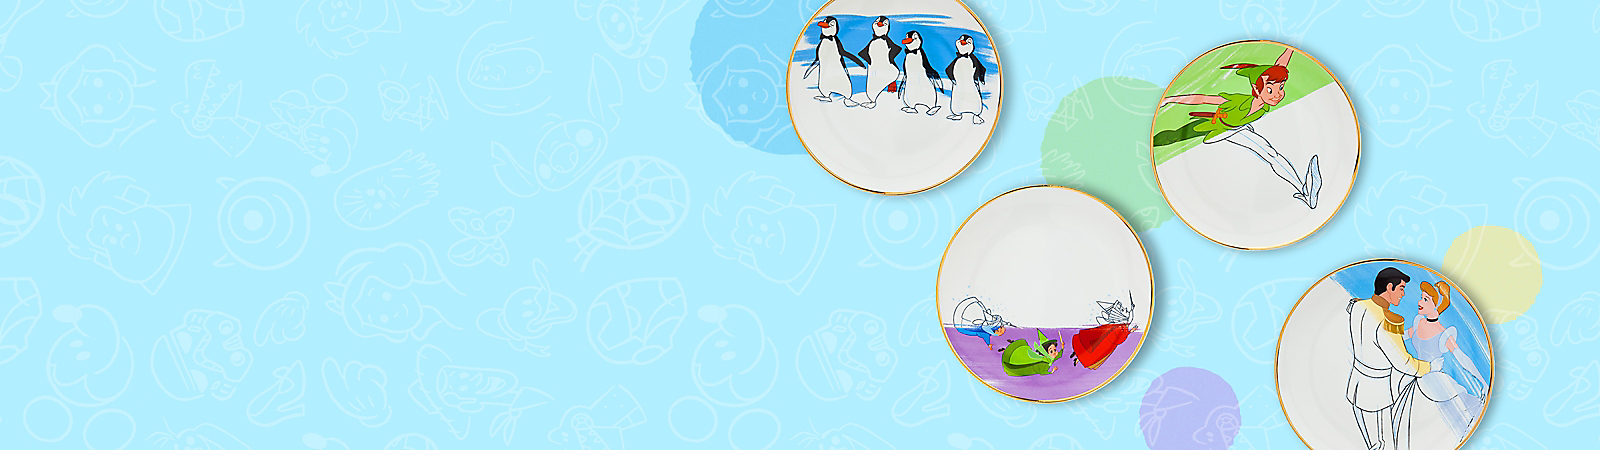 Background image of Dinnerware